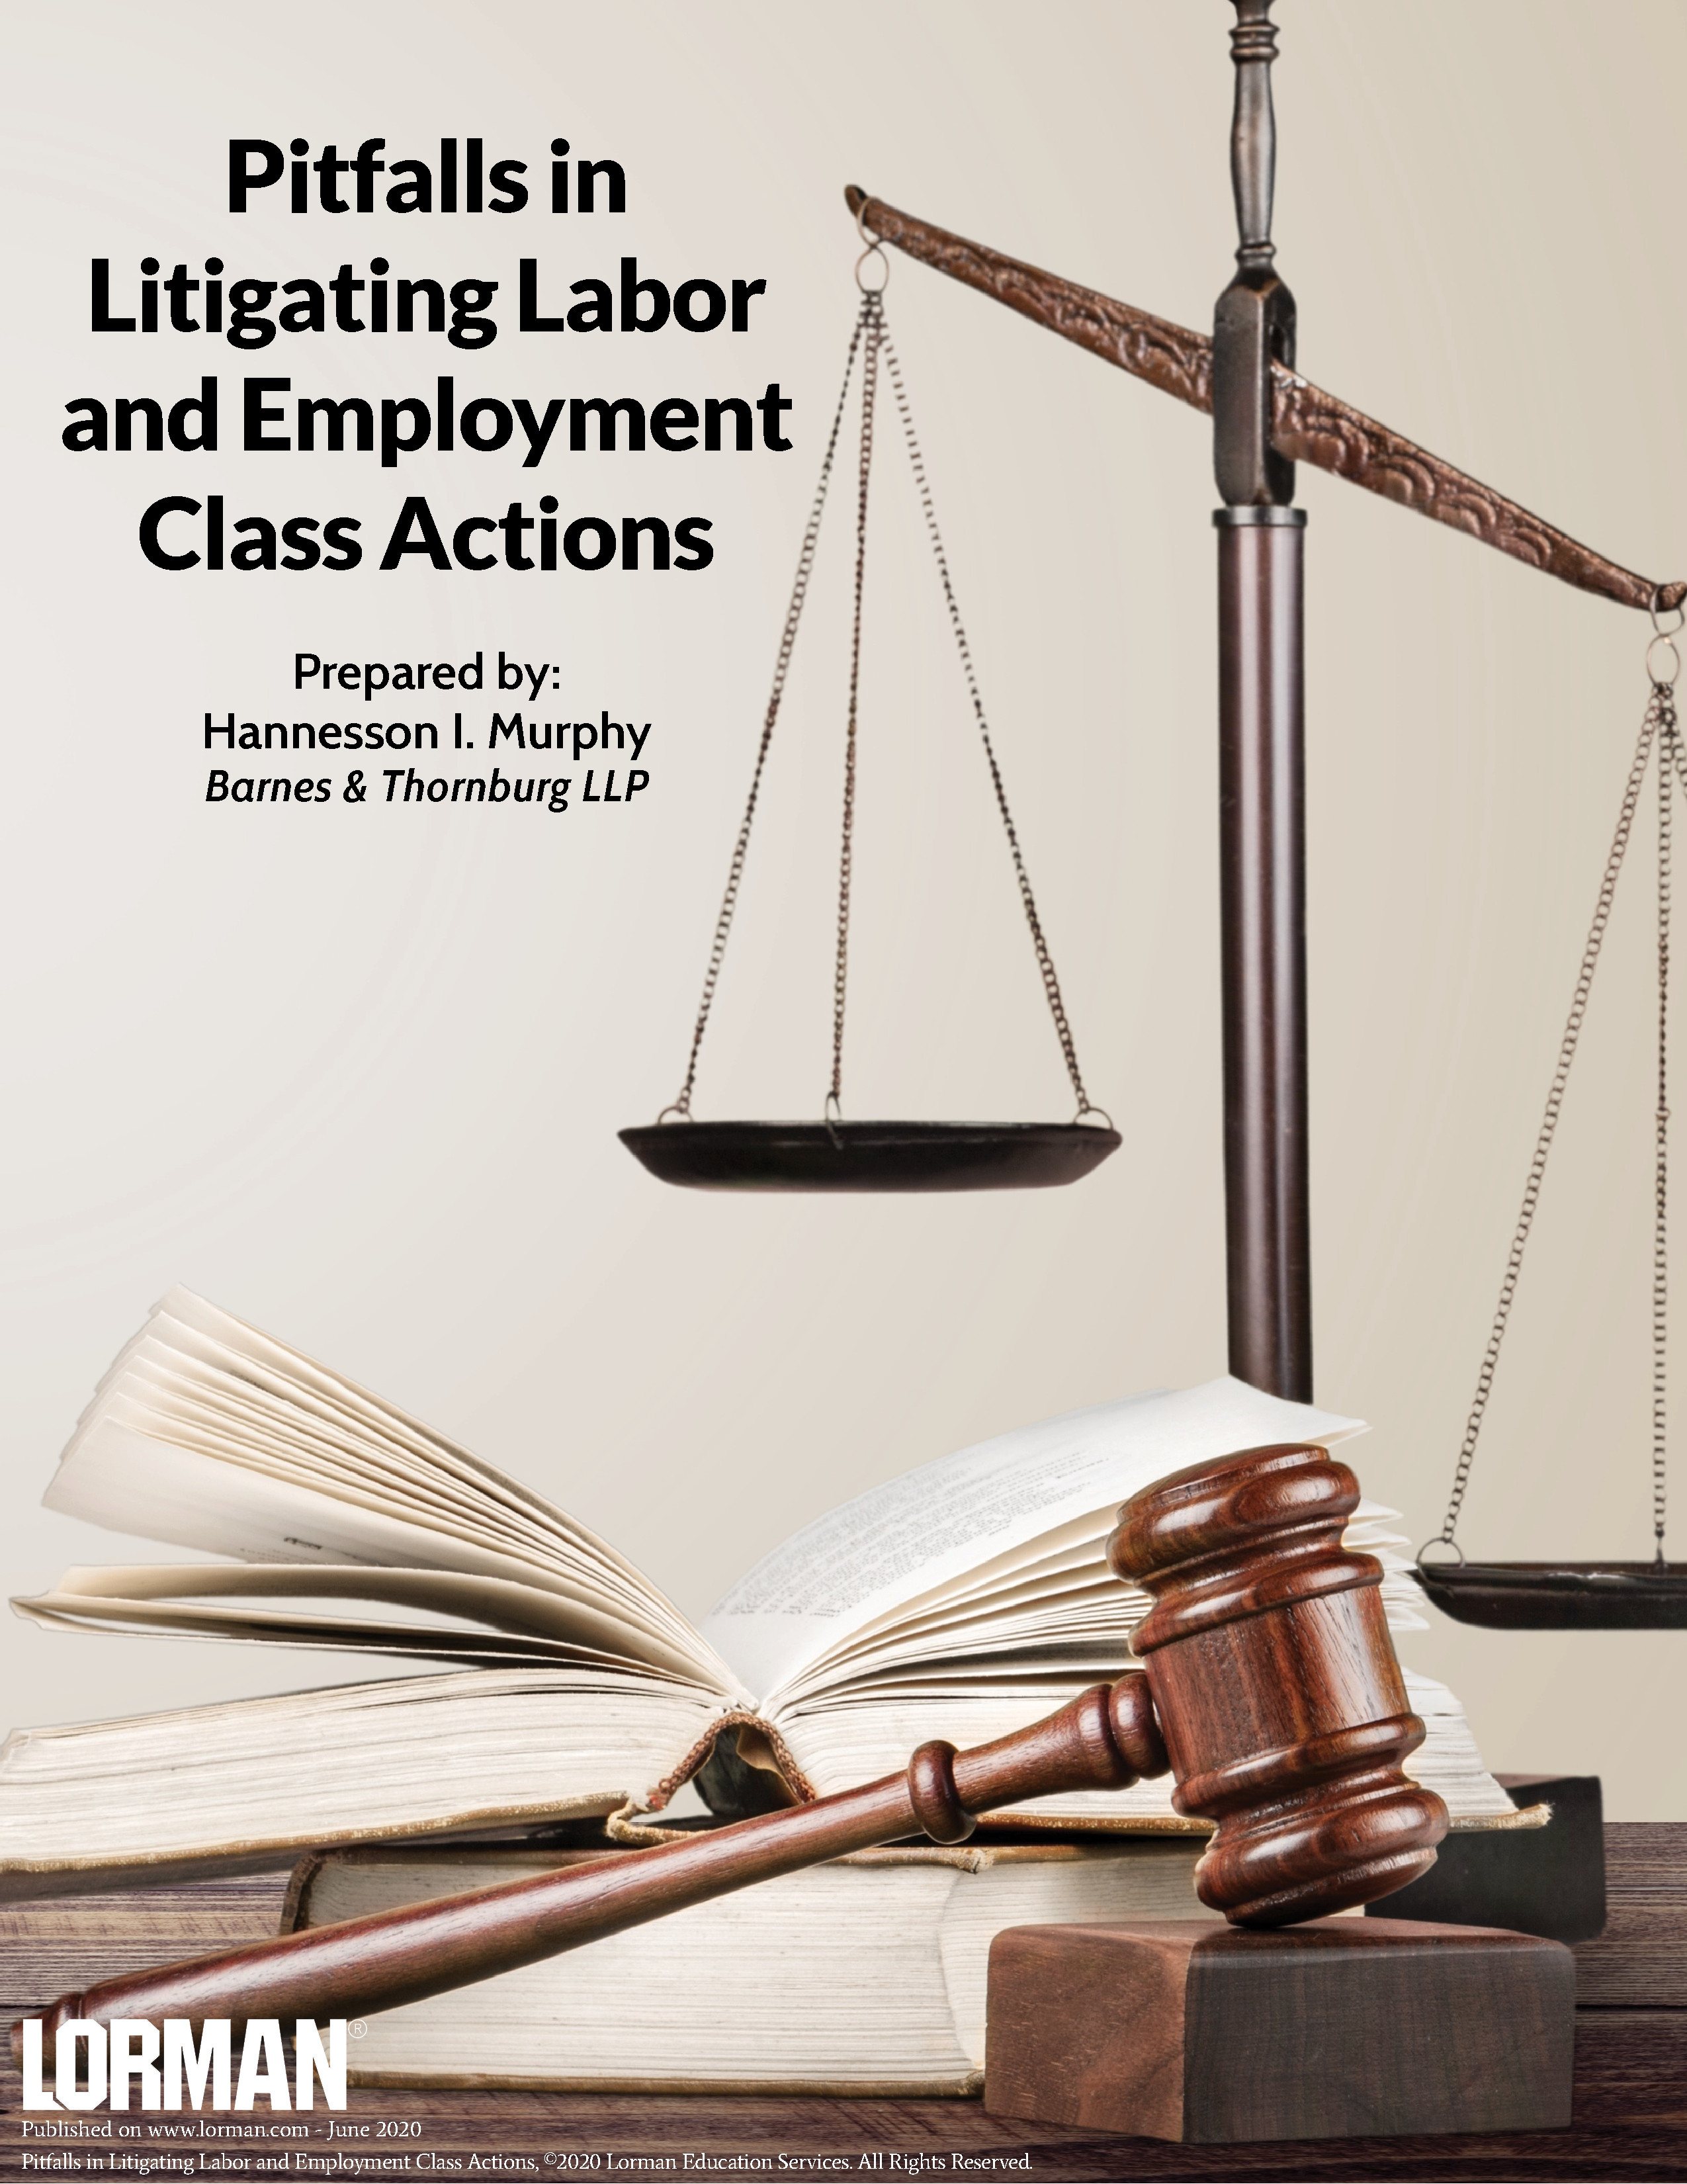 Pitfalls in Litigating Labor and Employment Class Actions